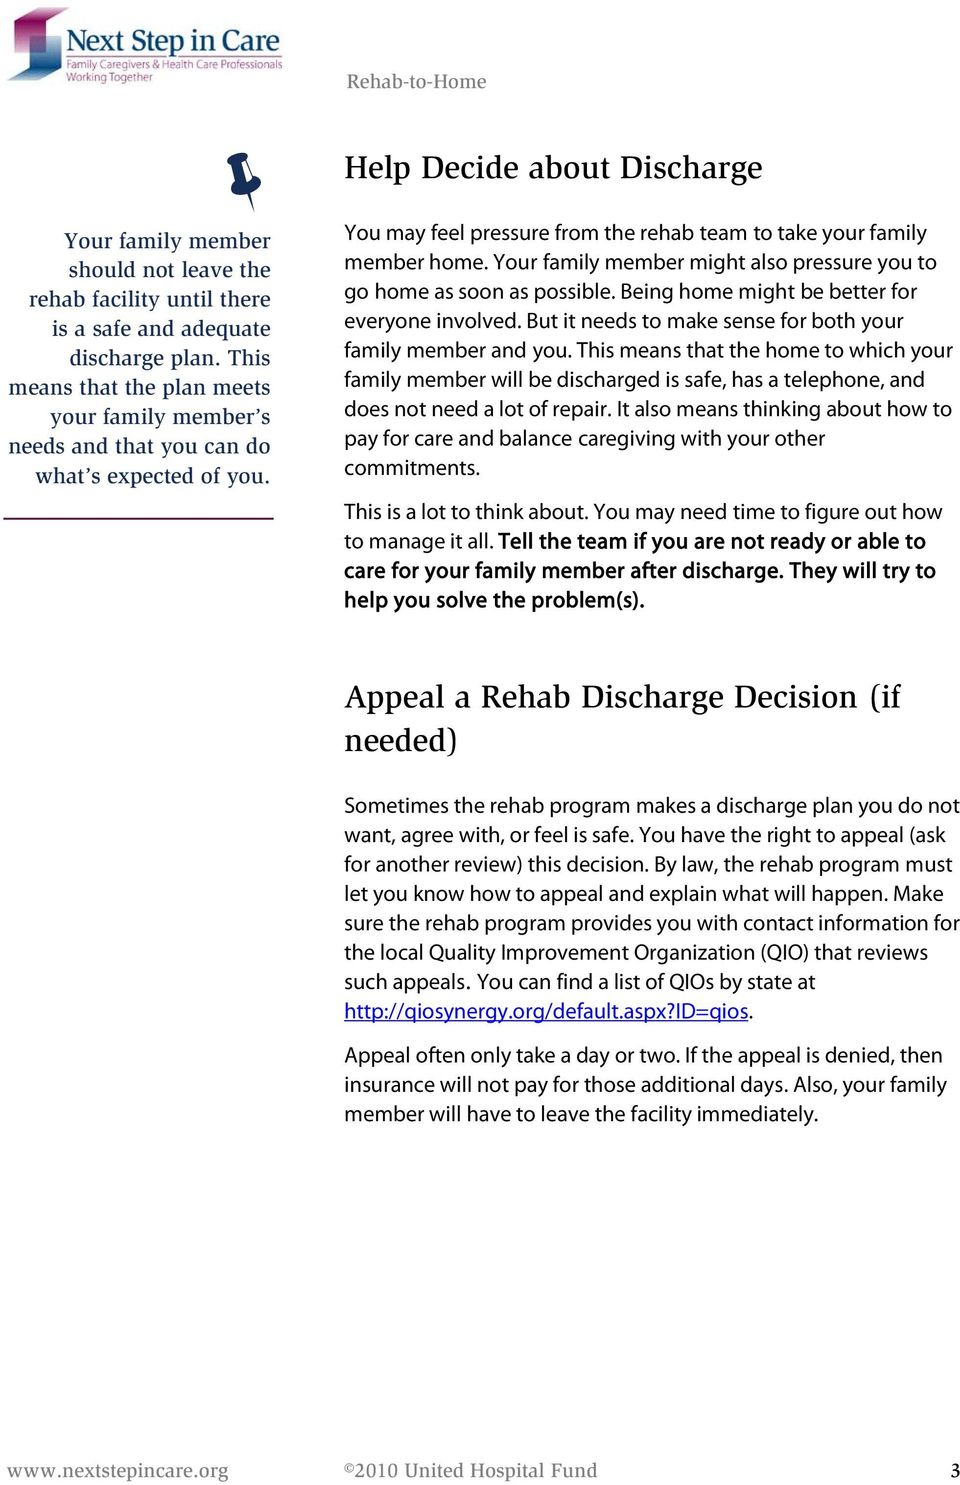 Help Decide about Discharge You may feel pressure from the rehab team to take your family member home. Your family member might also pressure you to go home as soon as possible.